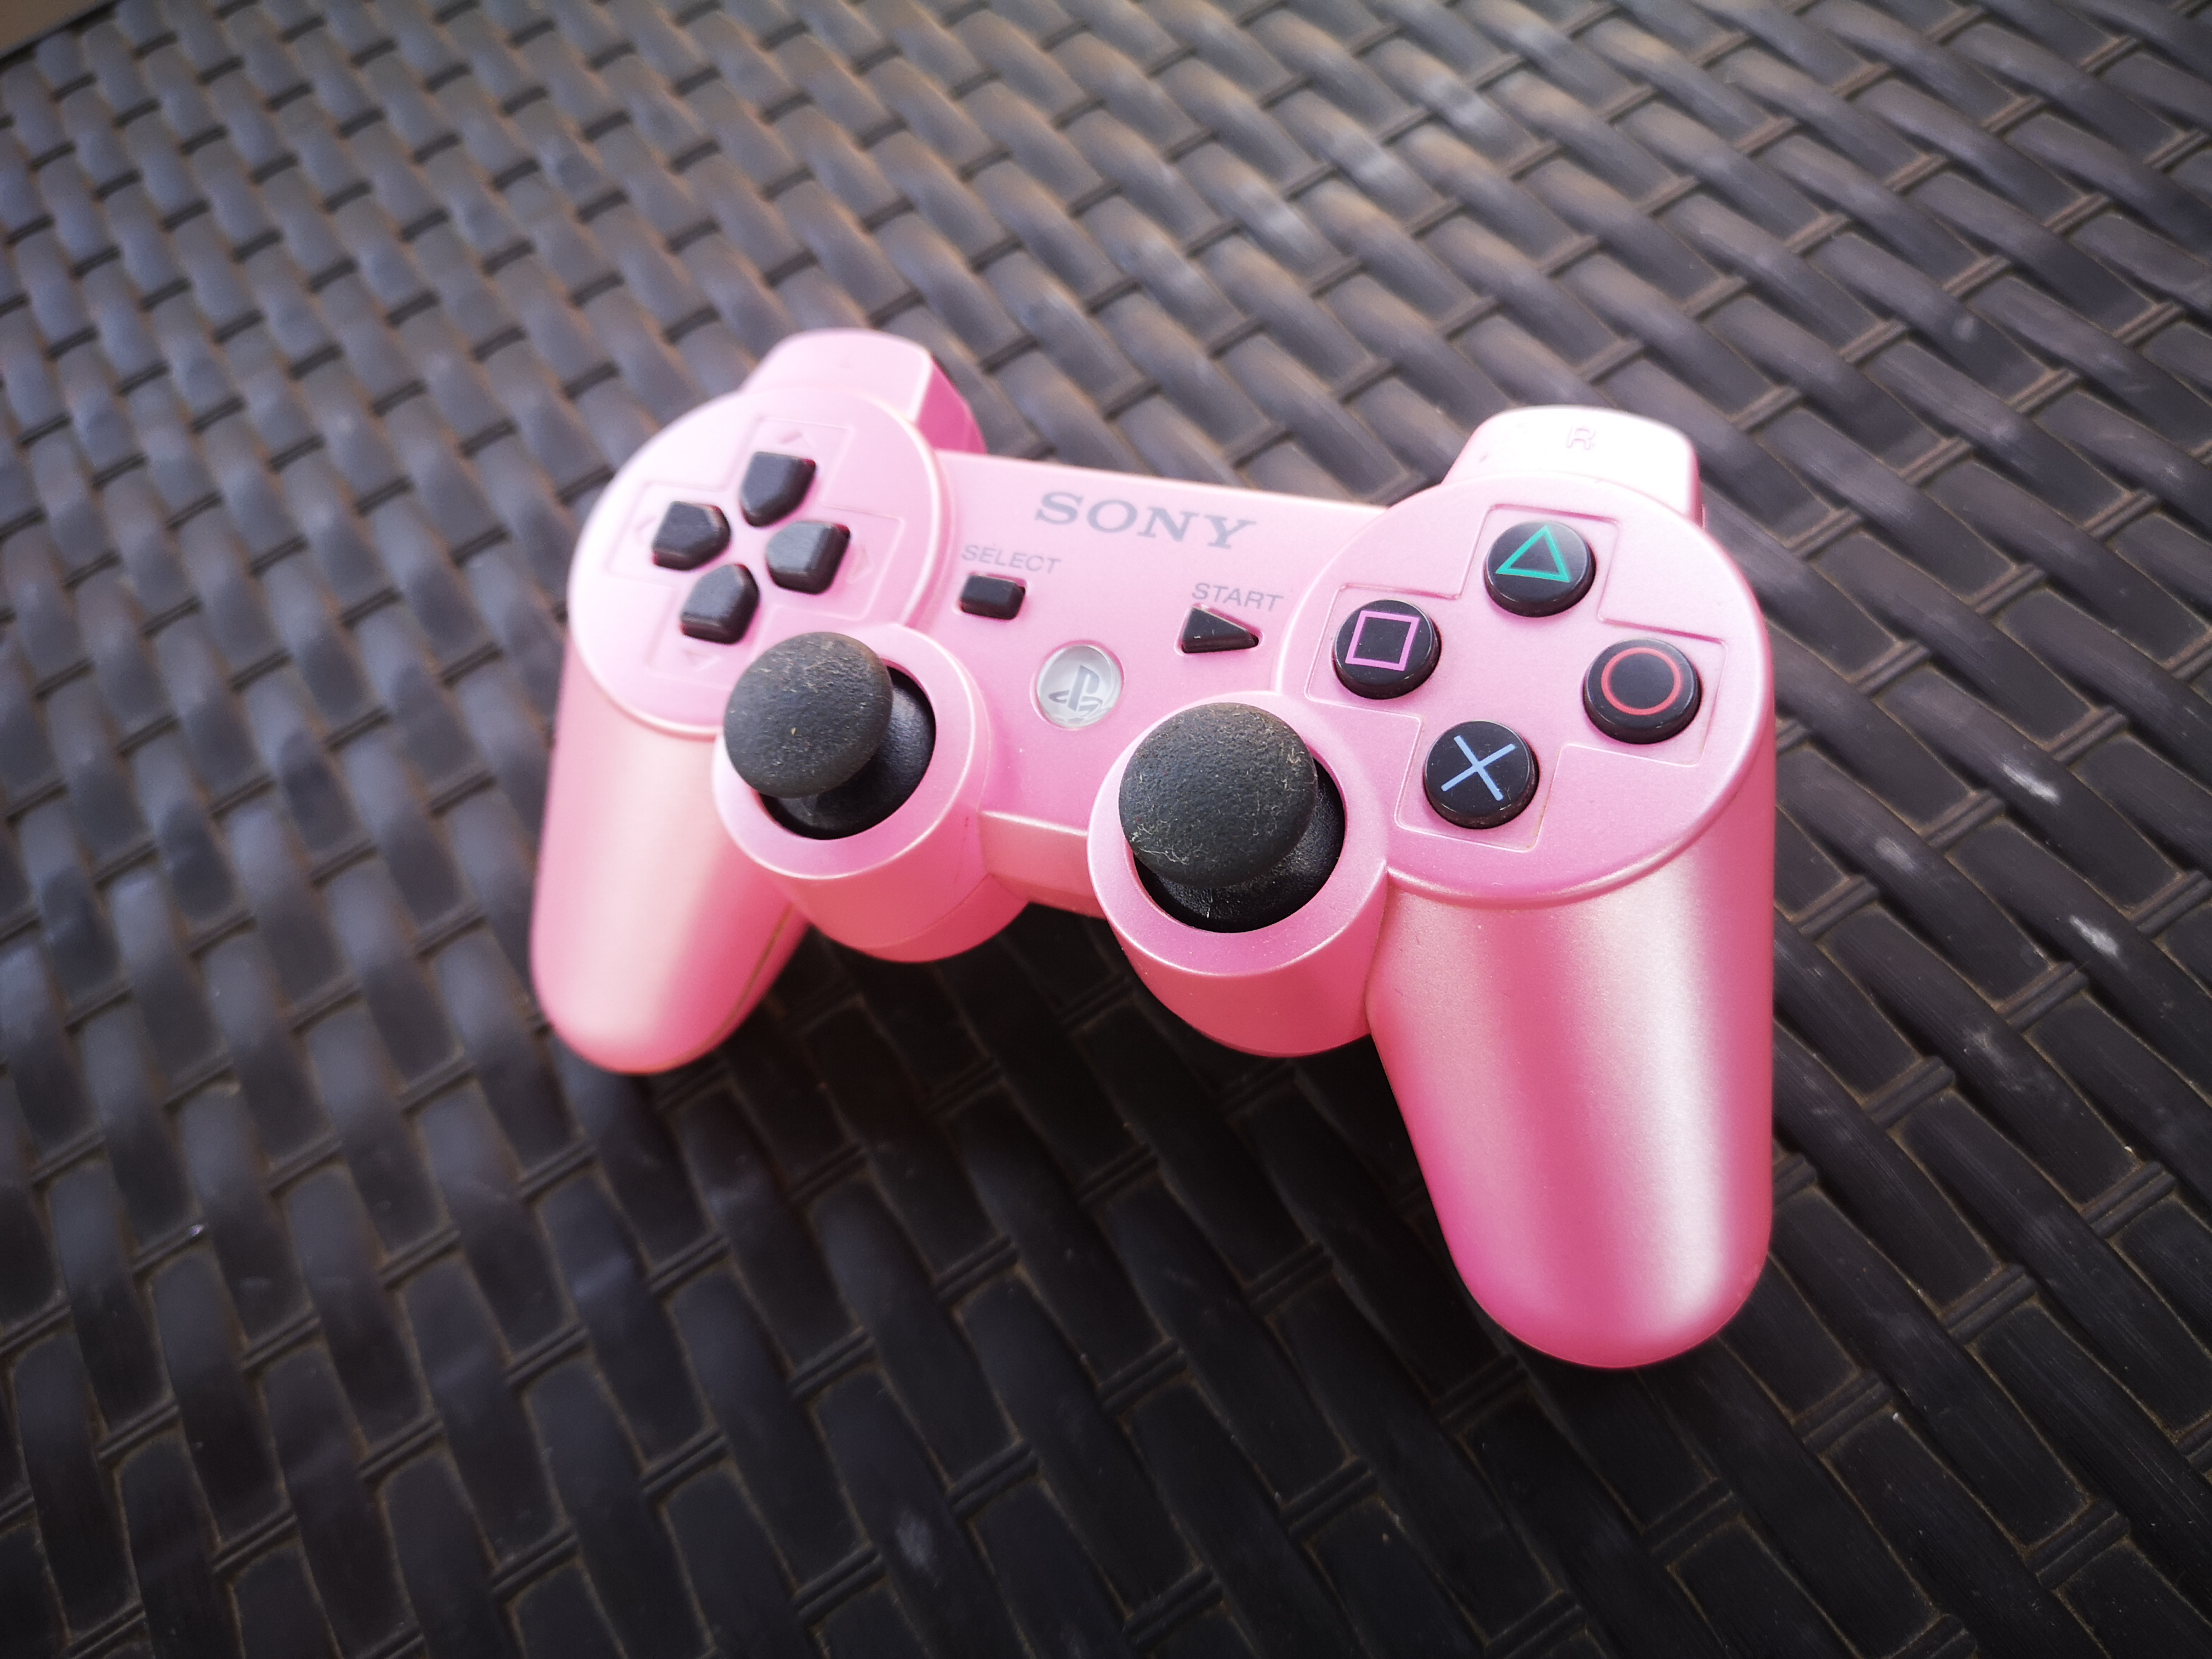 Sony Dualshock 3 Pink edition